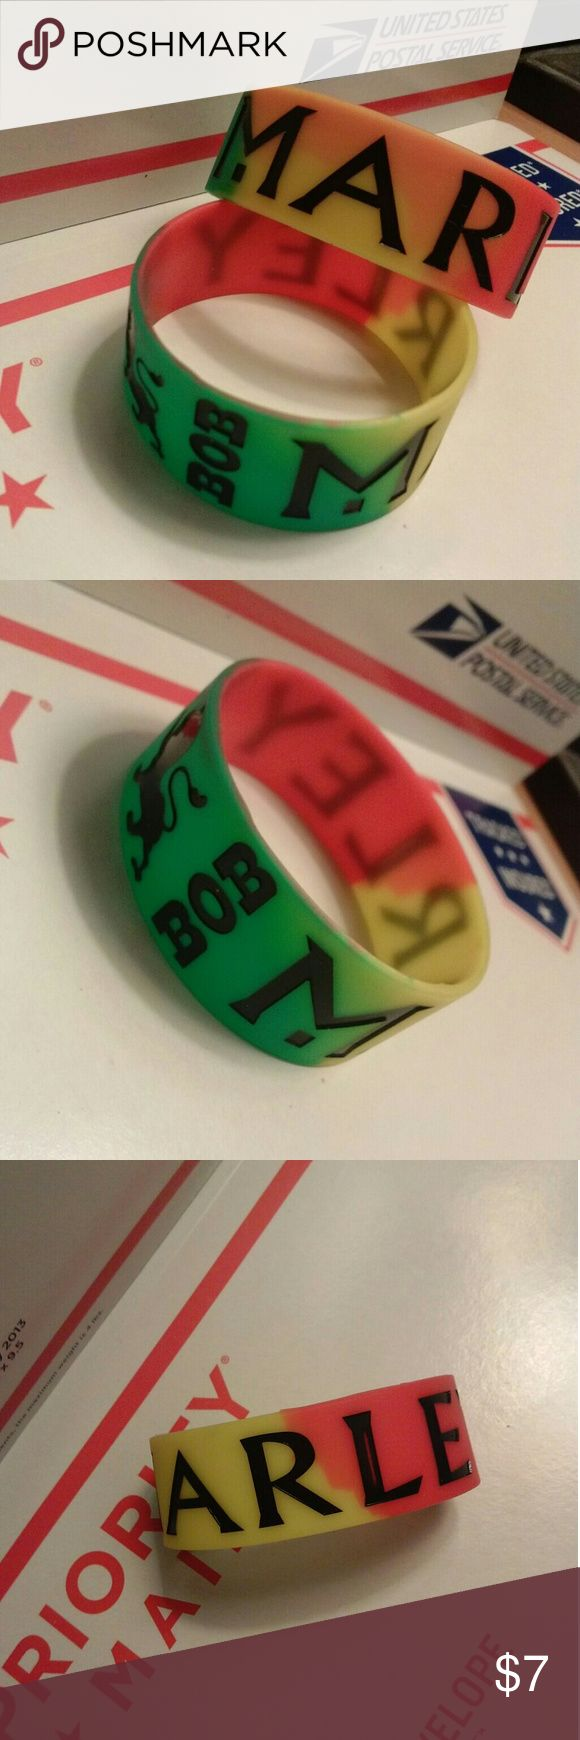 (2) BOB MARLEY BRACELETS RASTA COLORS WRIATBANDS TWO WRISTBANDS. NEW.NEVER USED. YOU RECEIVE BOTH.   ONE SIZE FITS MOST ADULTS BLENDED GREEN YELLOW AND RED COLORS STRONG DURABLE THICK SILICONE Accessories Jewelry